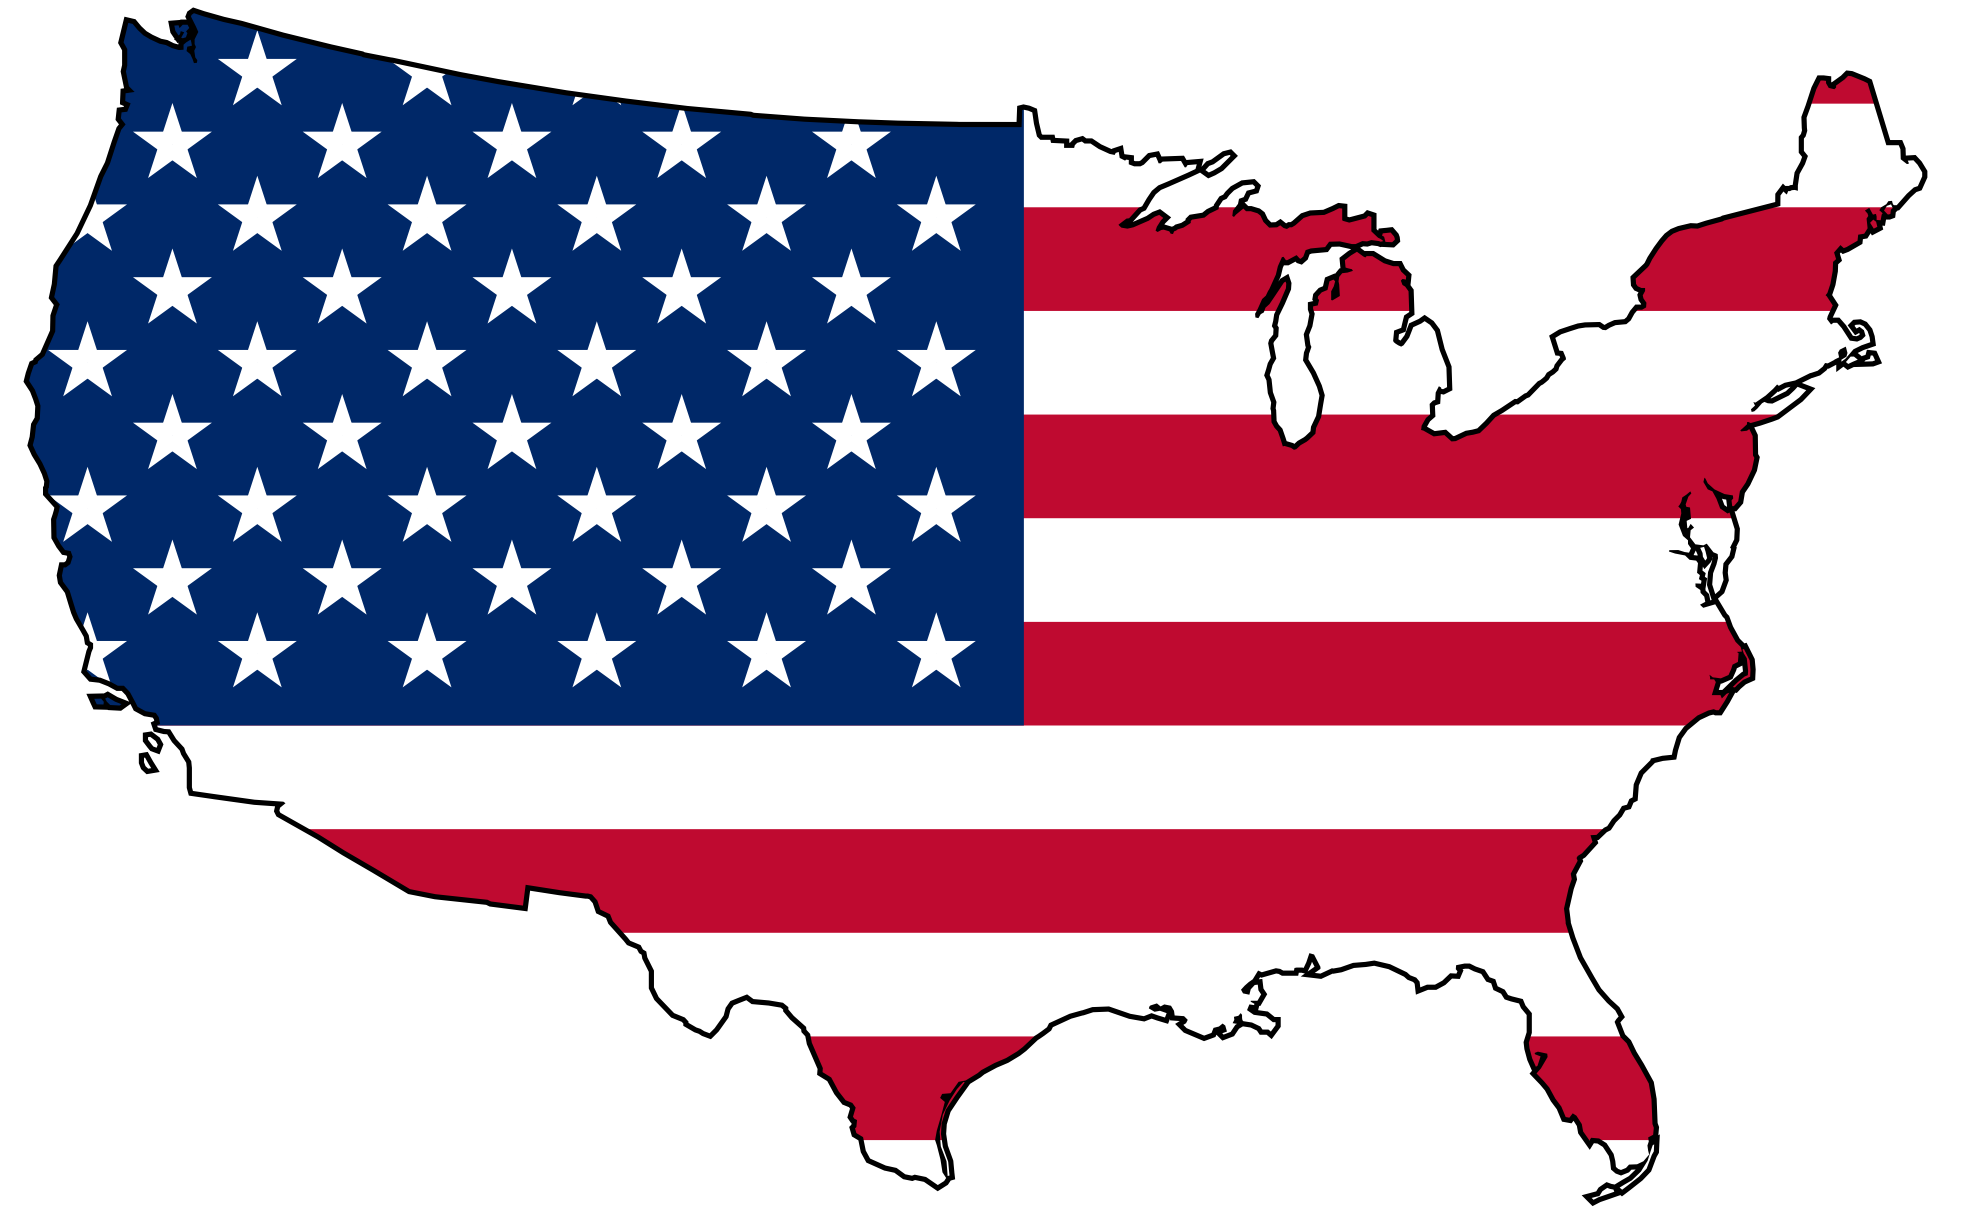 Us clipart map clip royalty free Usa Map Clipart - Clipart Kid clip royalty free